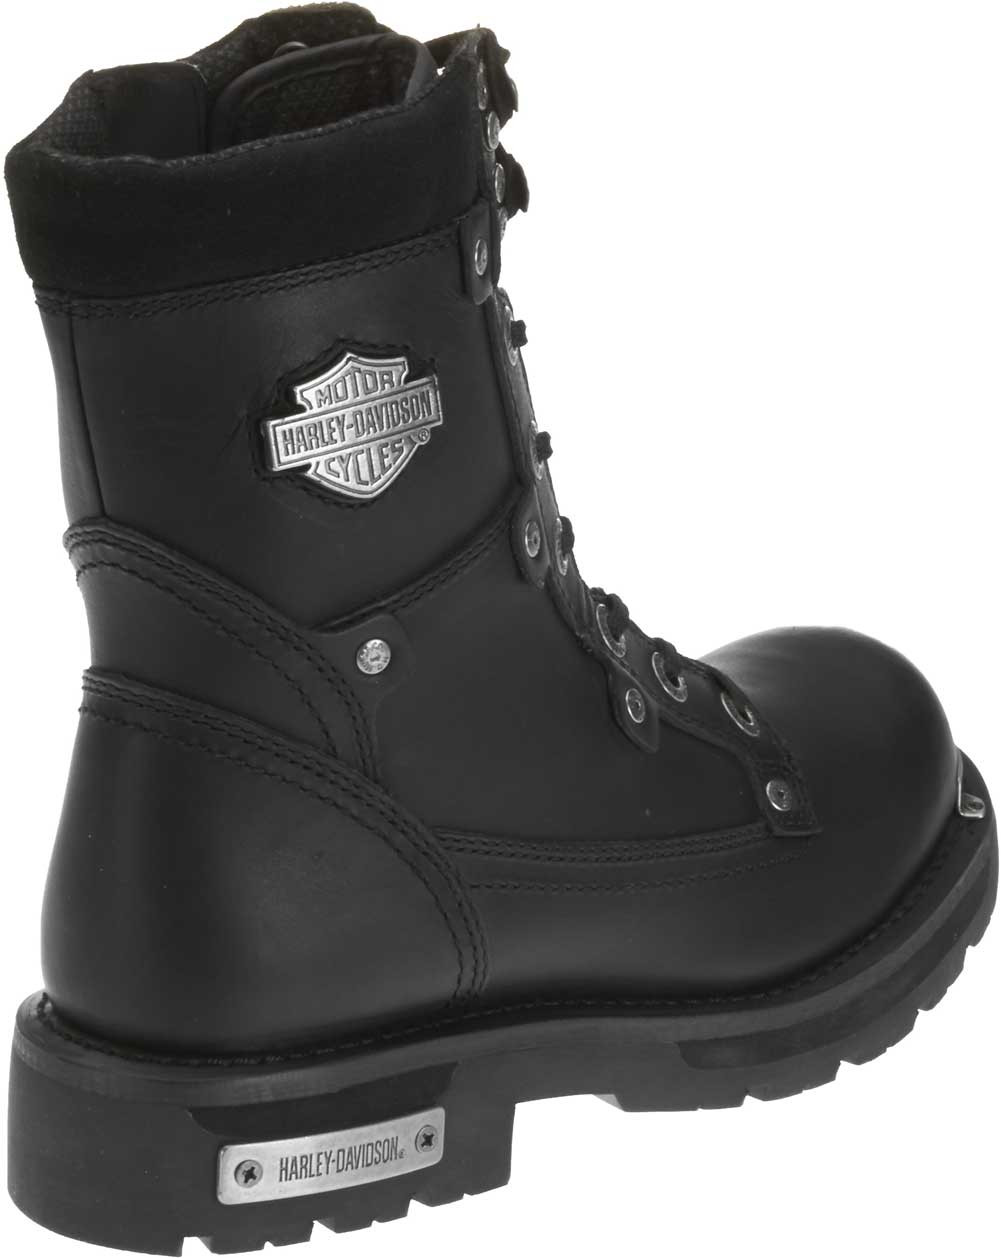 eea4d7bccd0220 Harley-Davidson Men s Camshaft Black Leather 9-Inch Motorcycle Boots D91693  - Largest Selection. See 3 more pictures